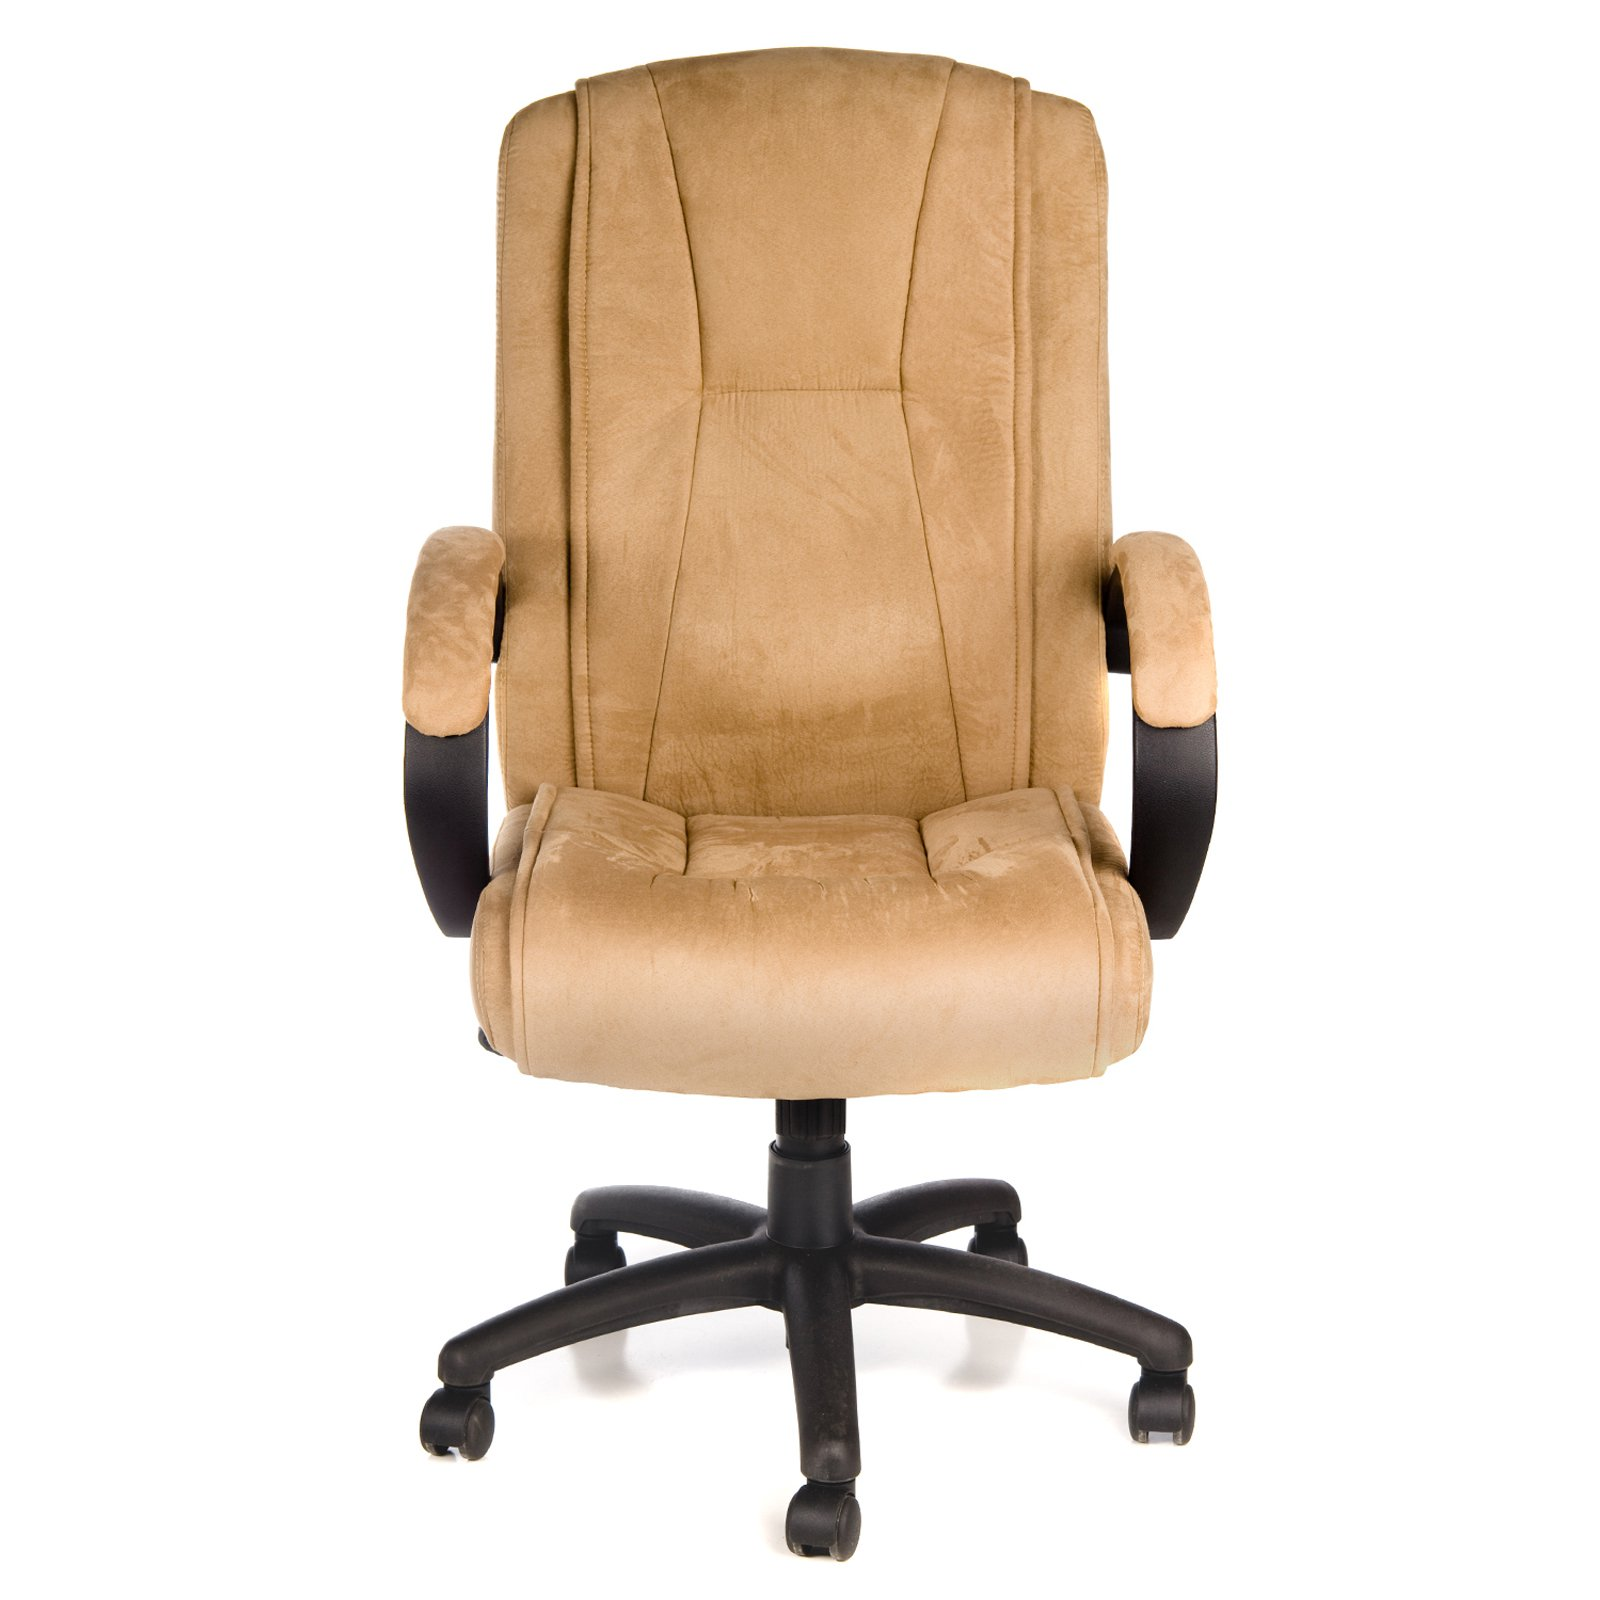 comfort products 60-0971 padded microfiber fabric executive chair